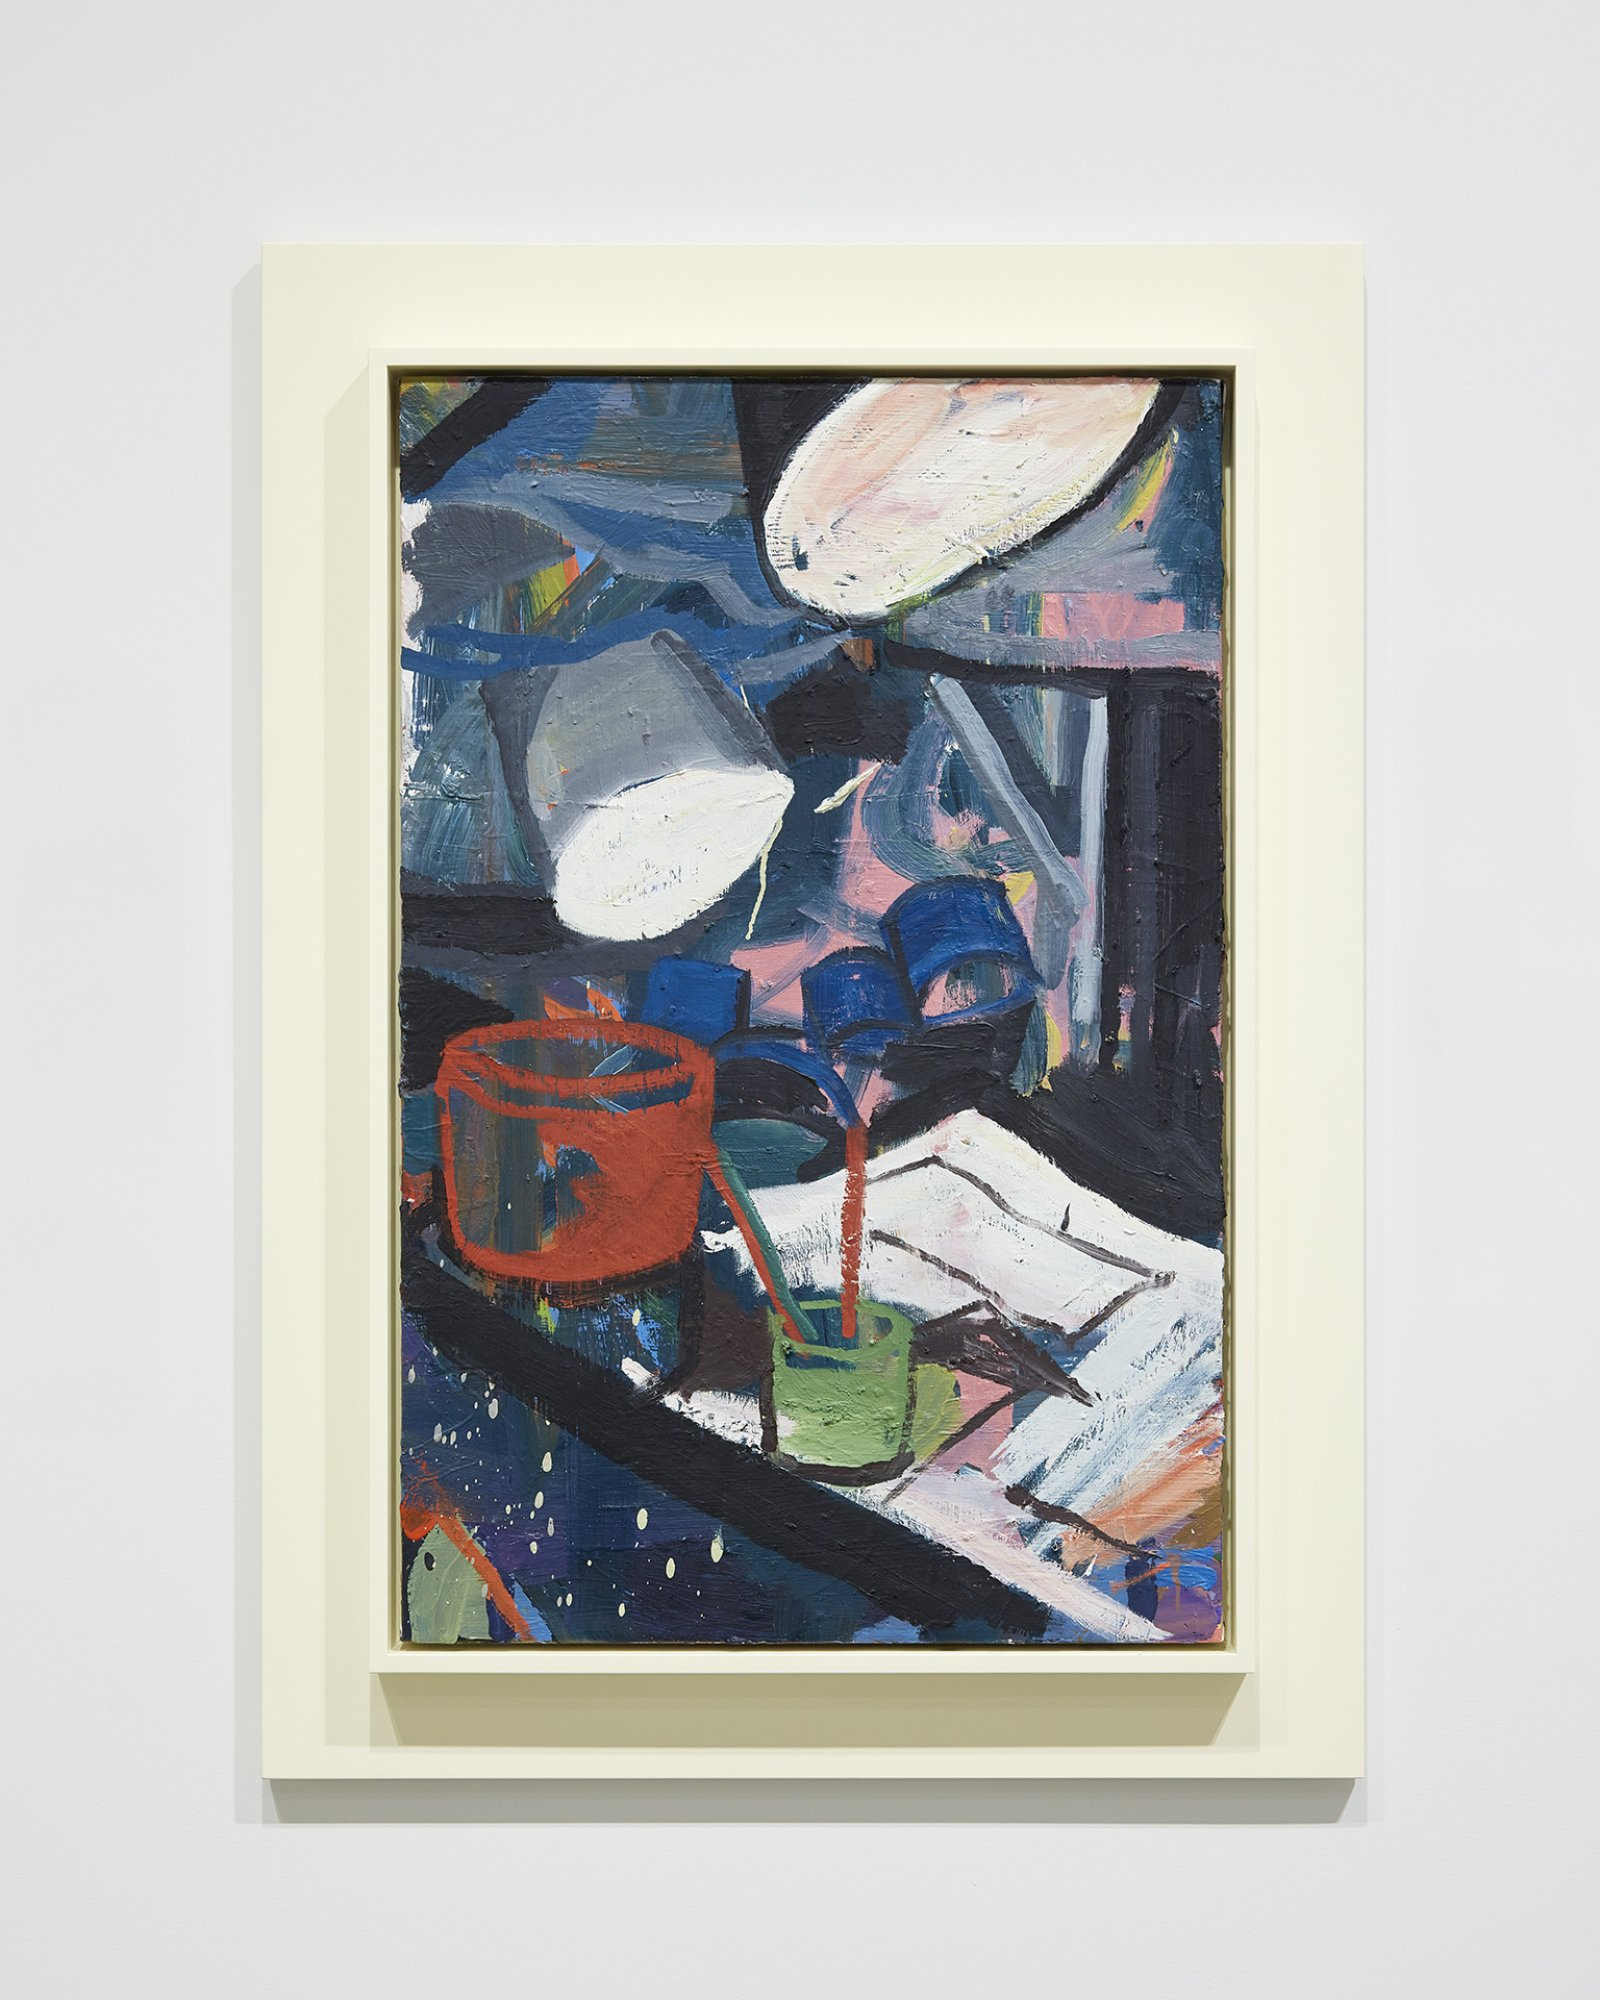 Damian Moppett, Dark Lights in Studio, 2010, oil on linen and wood frame, 41 x 30 in. (104 x 75 cm). Installation view, Every Story Has Two Sides, Art Gallery of Alberta, Edmonton, 2016 by Damian Moppett